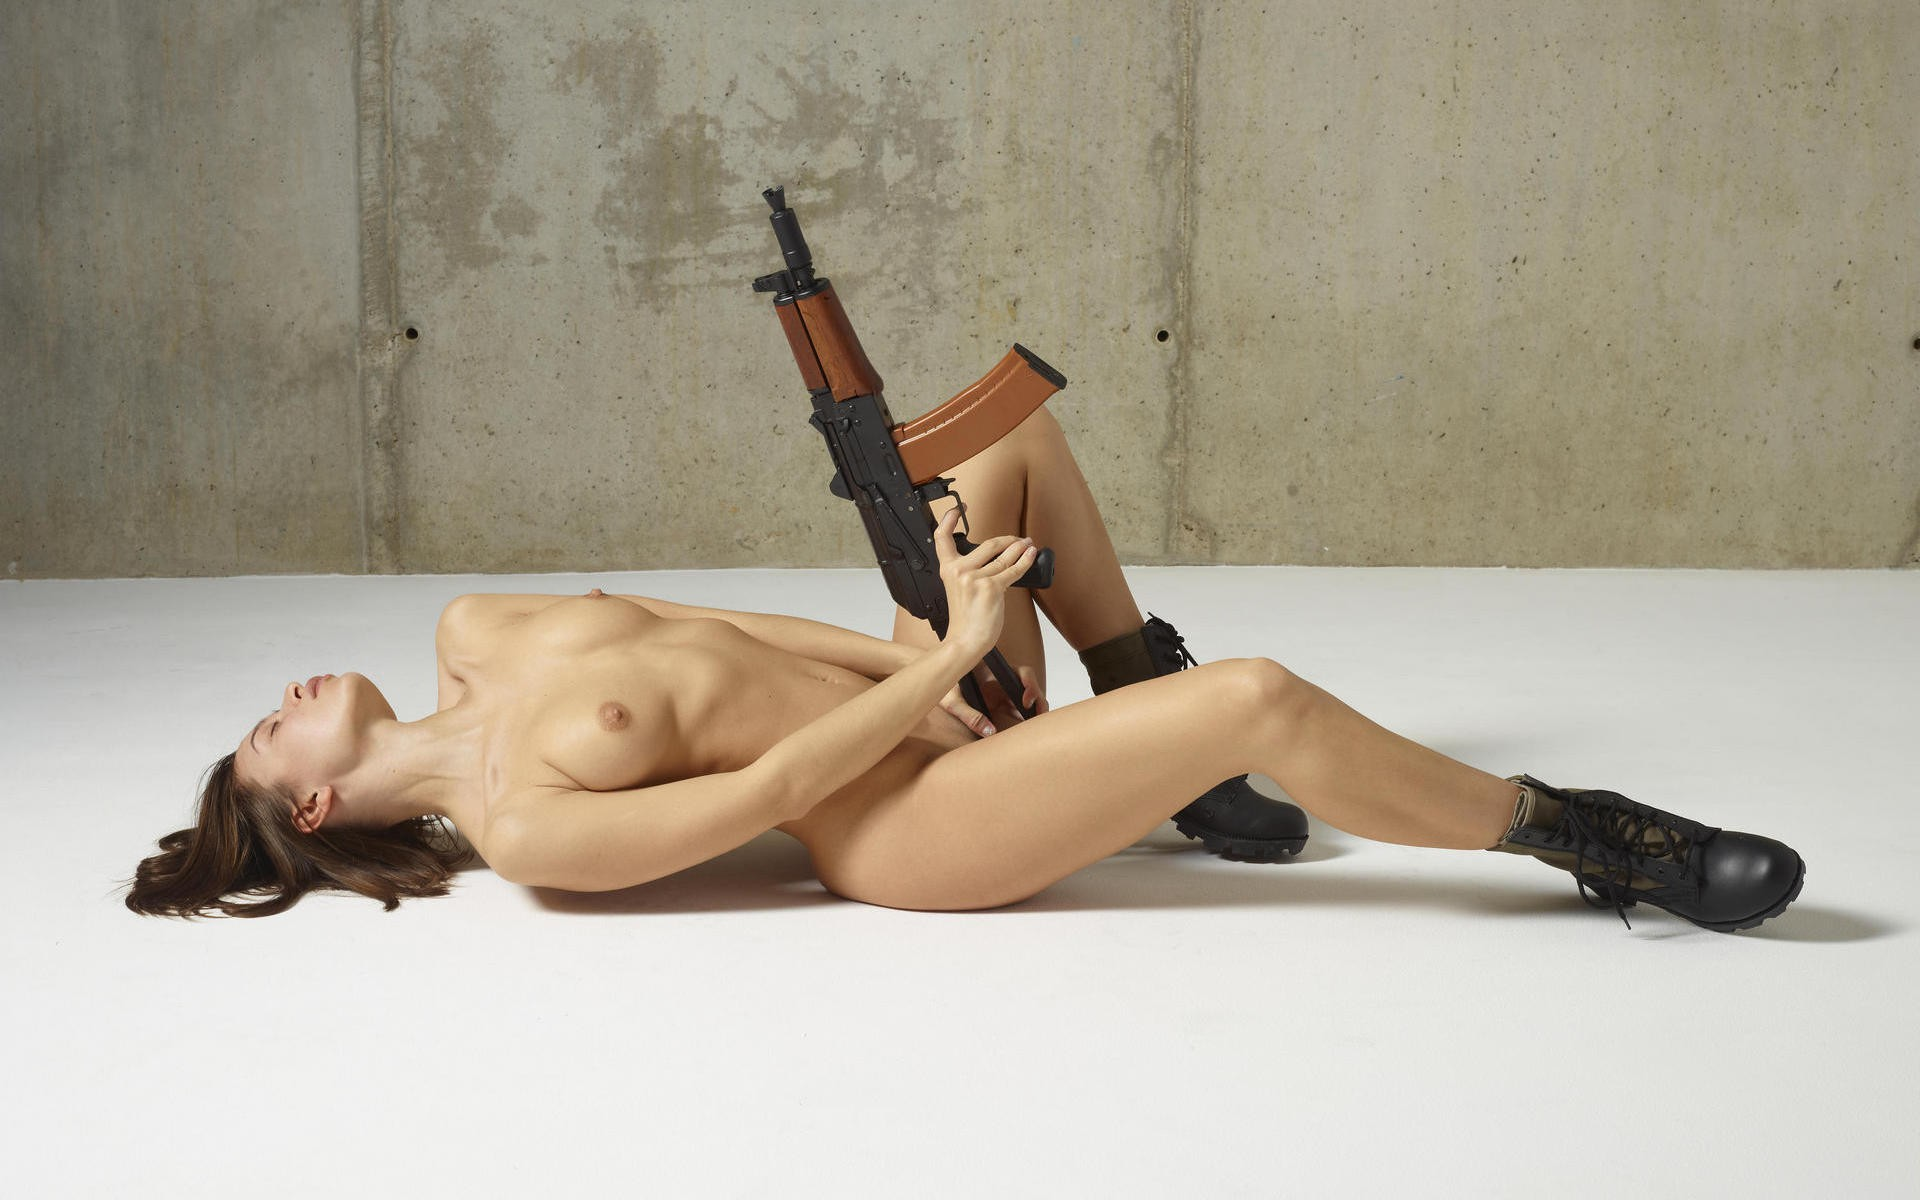 Nude woman with AK-47.jpg